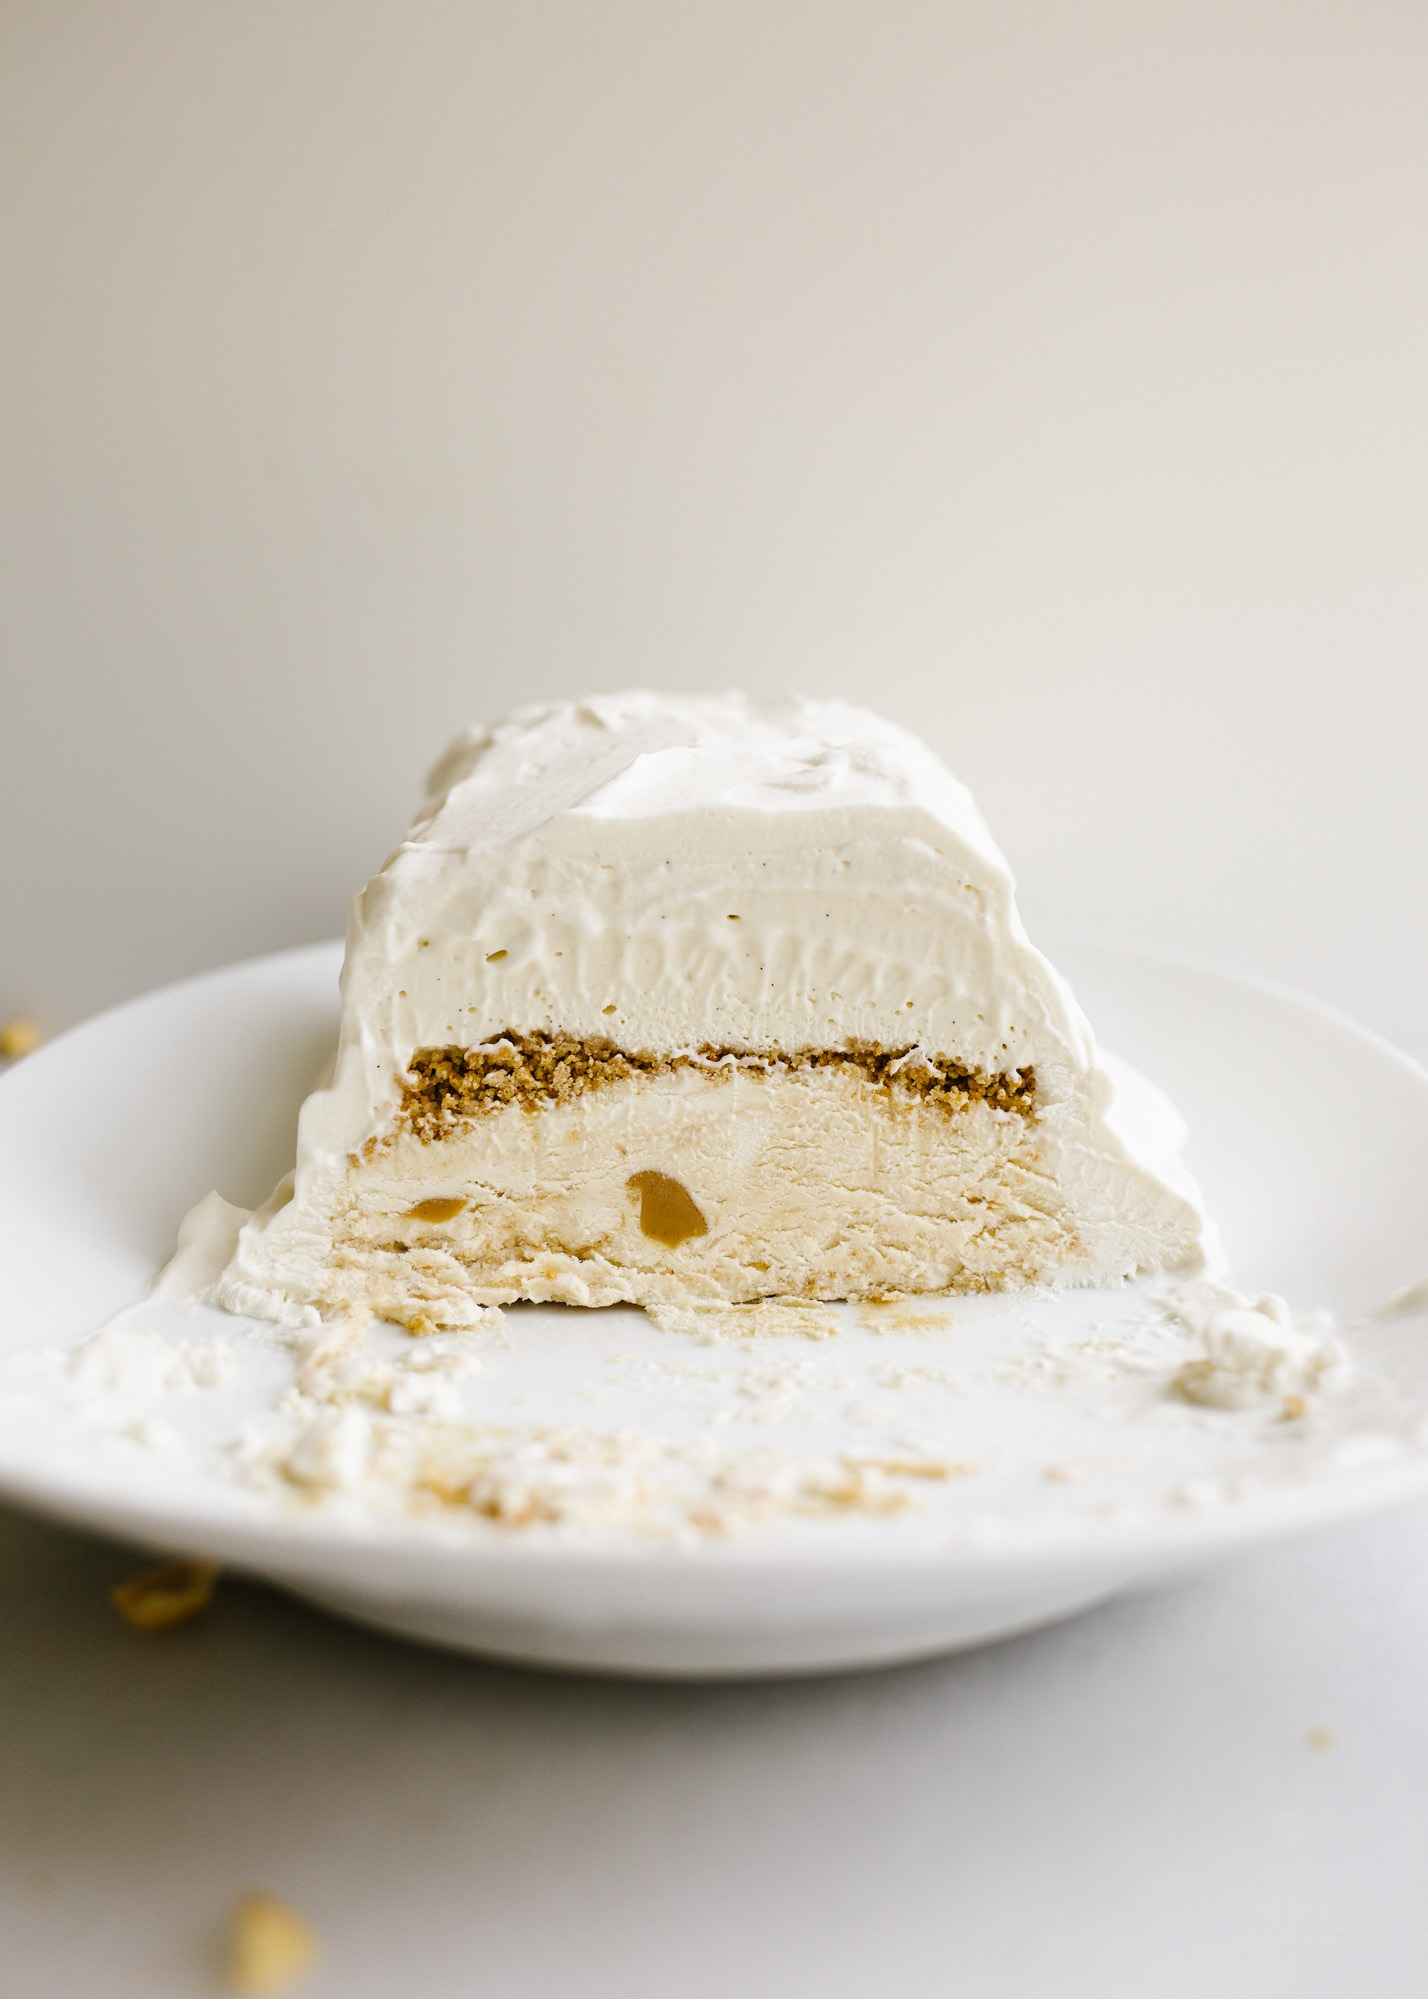 Peanut Butter Honey Graham Ice Cream Cake by Wood and Spoon blog. This is a no-churn ice cream loaf cake with a graham crumble, peanut butter ice cream, honey ice cream, and a swirl of peanut butter throughout The whole thing is topped with whipped cream and cake be made ahead to be served as a simple summer dessert. Learn how to make this homemade ice cream cake here on thewoodandspoon.com